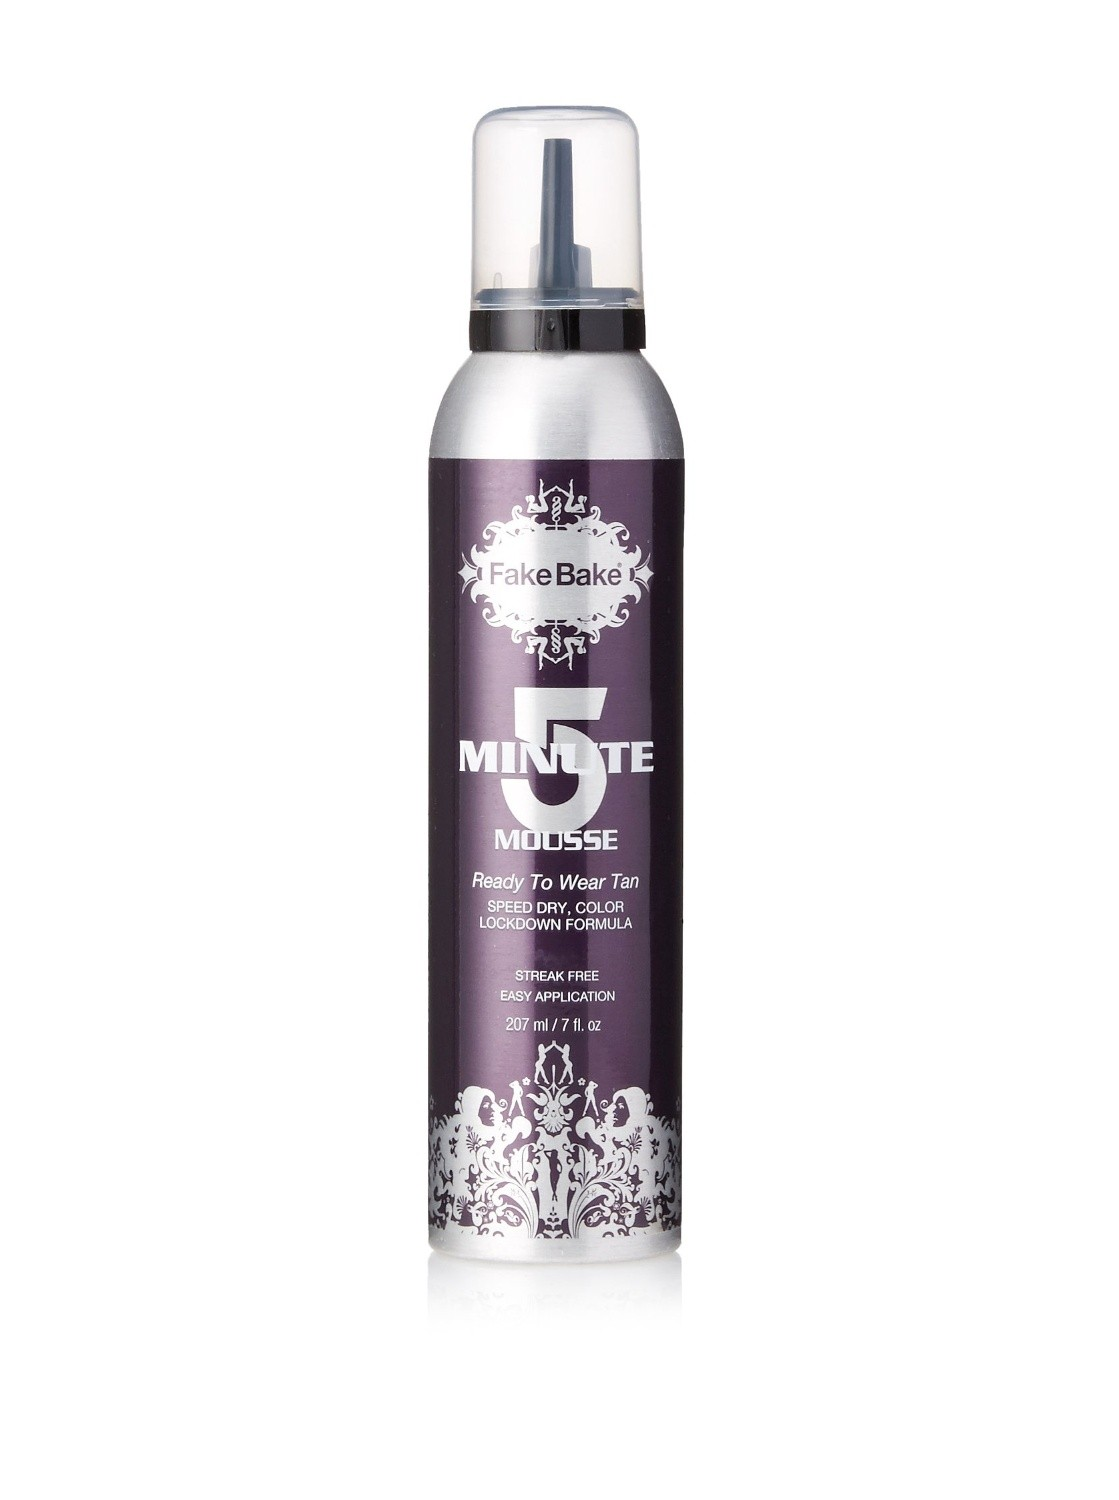 Fake Bake 5 Minute Mousse Ready To Wear Tan 7 oz